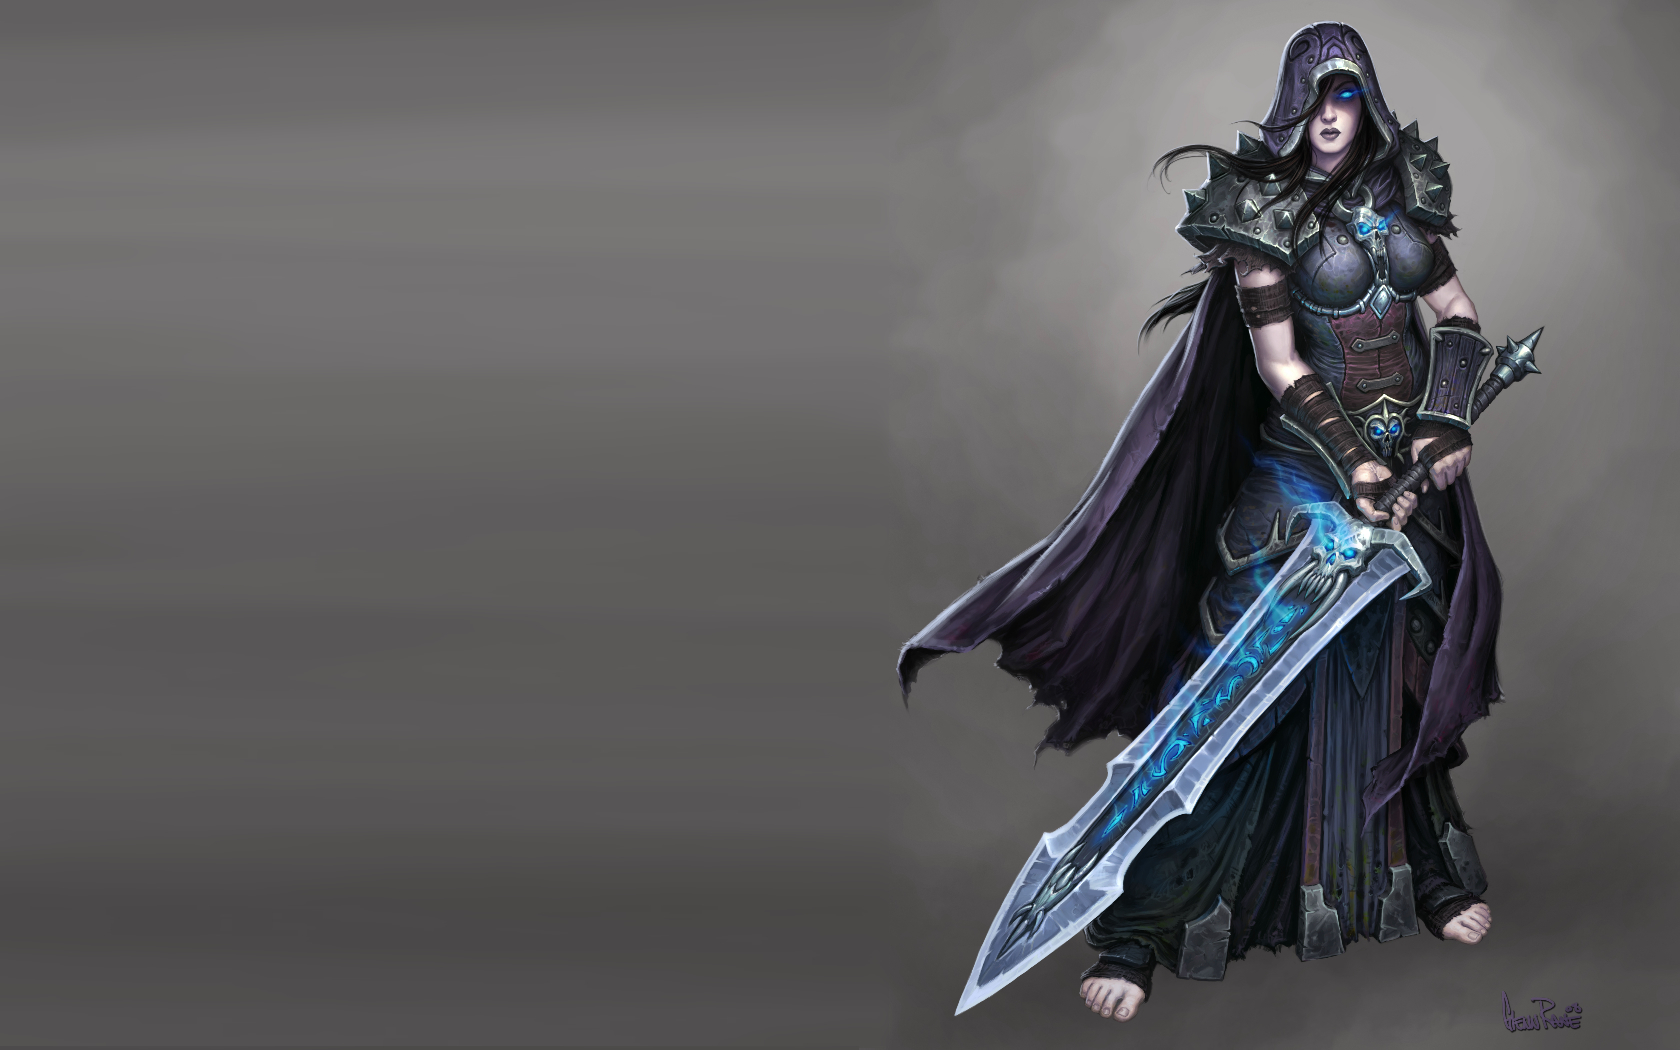 lich king armor Swords HD Wallpaper